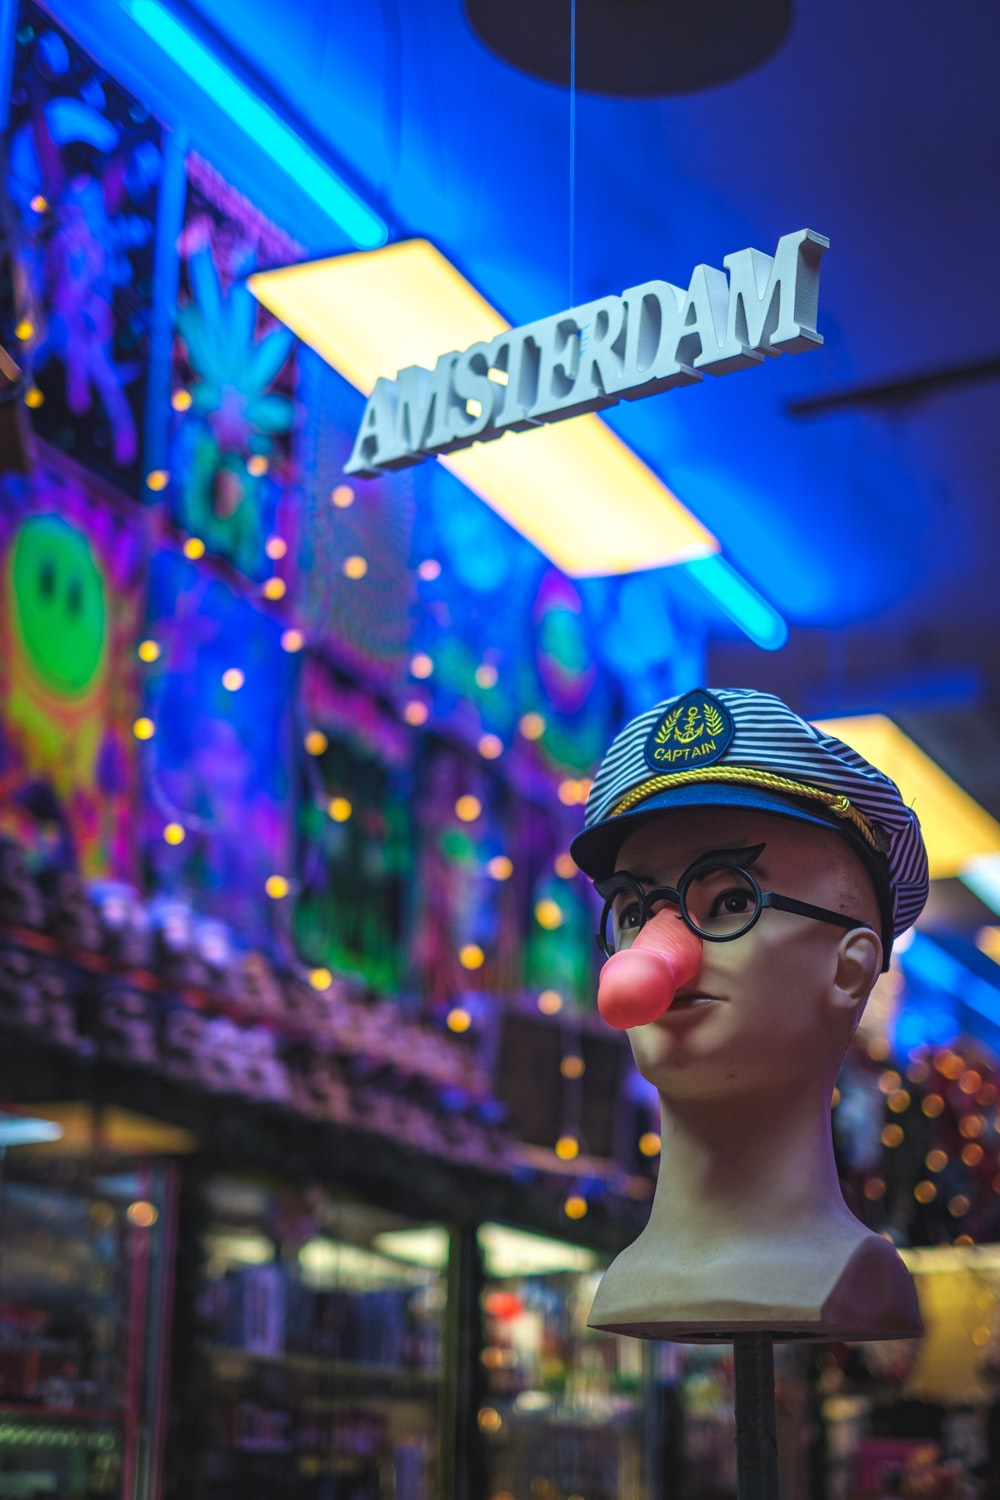 shallow focus photo of mannequin head wearing blue hat